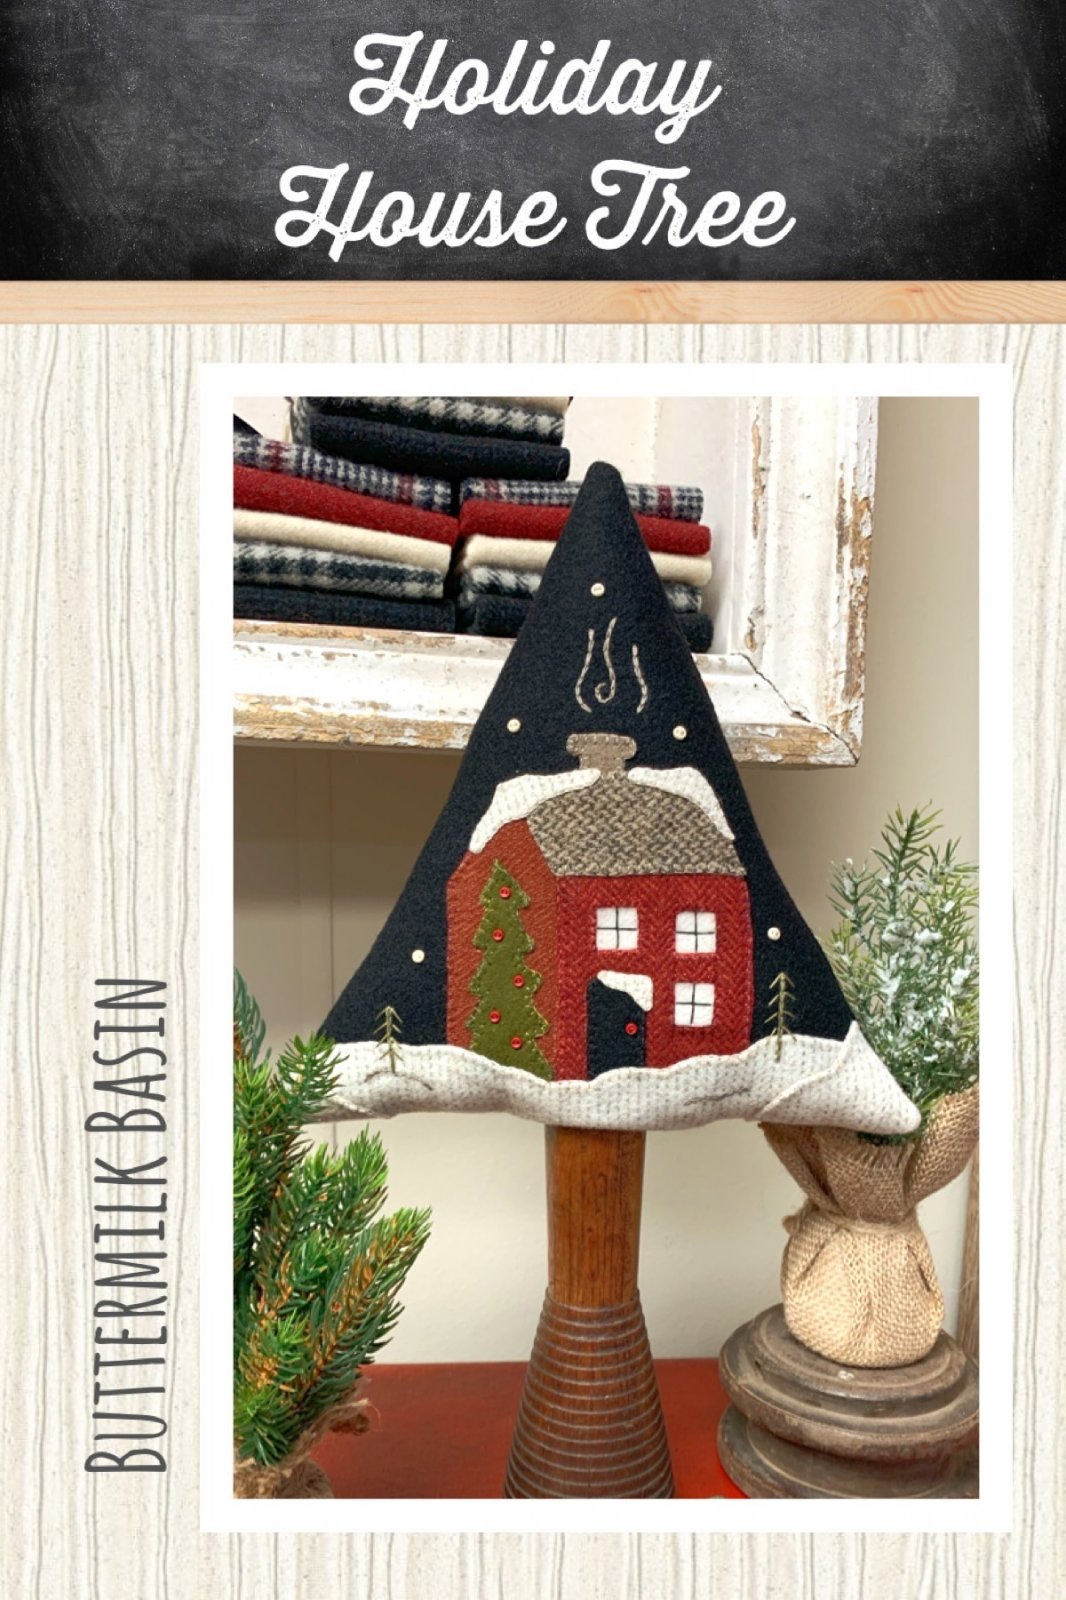 Holiday House Tree *Kit & Pattern